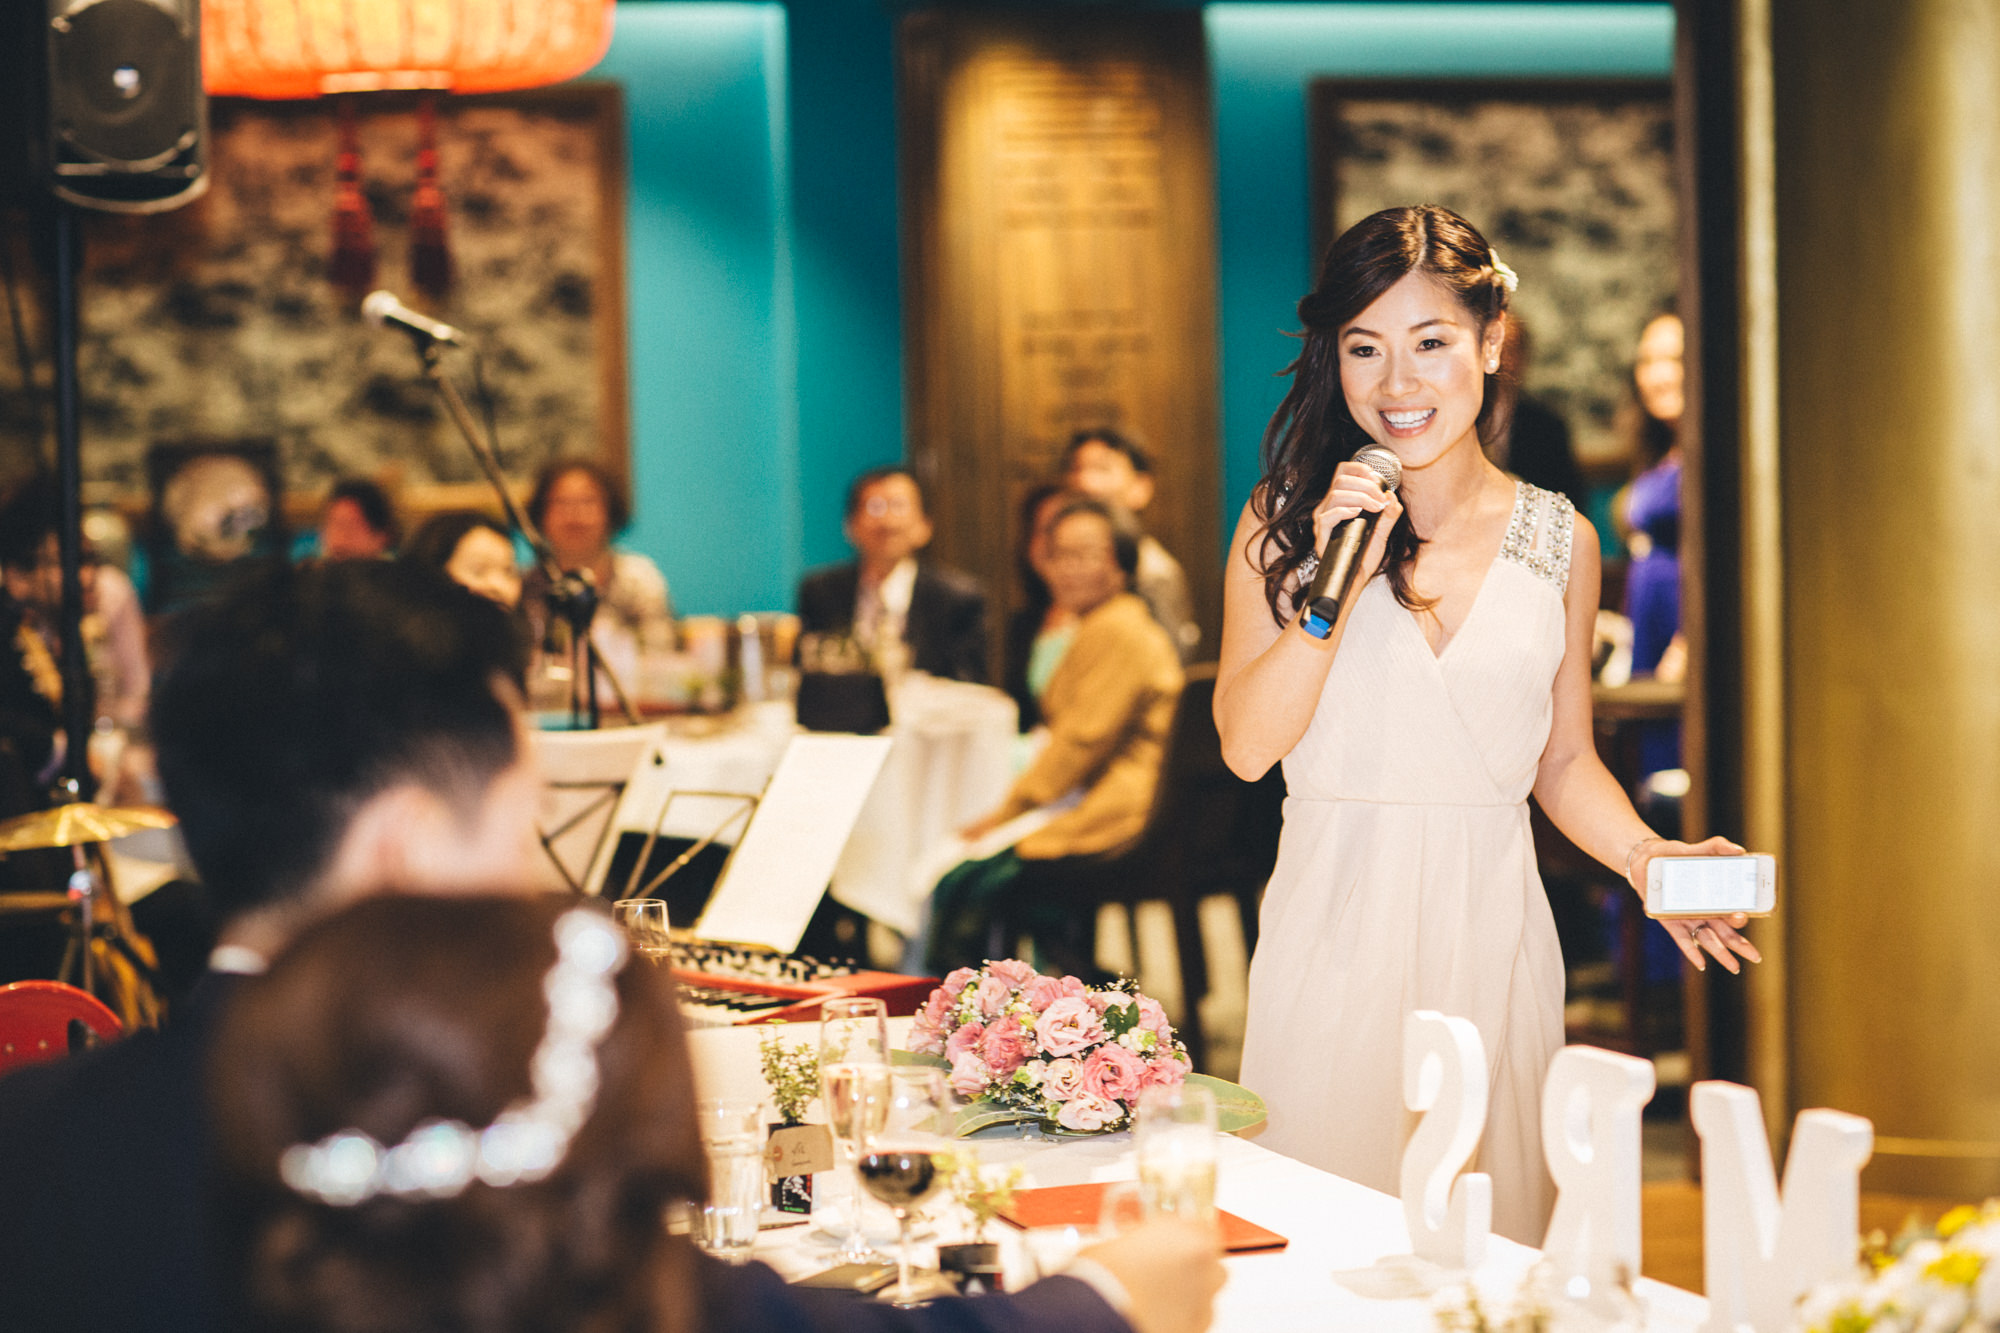 Allee & Rob - Singapore Wedding Photography (51 of 60).jpg